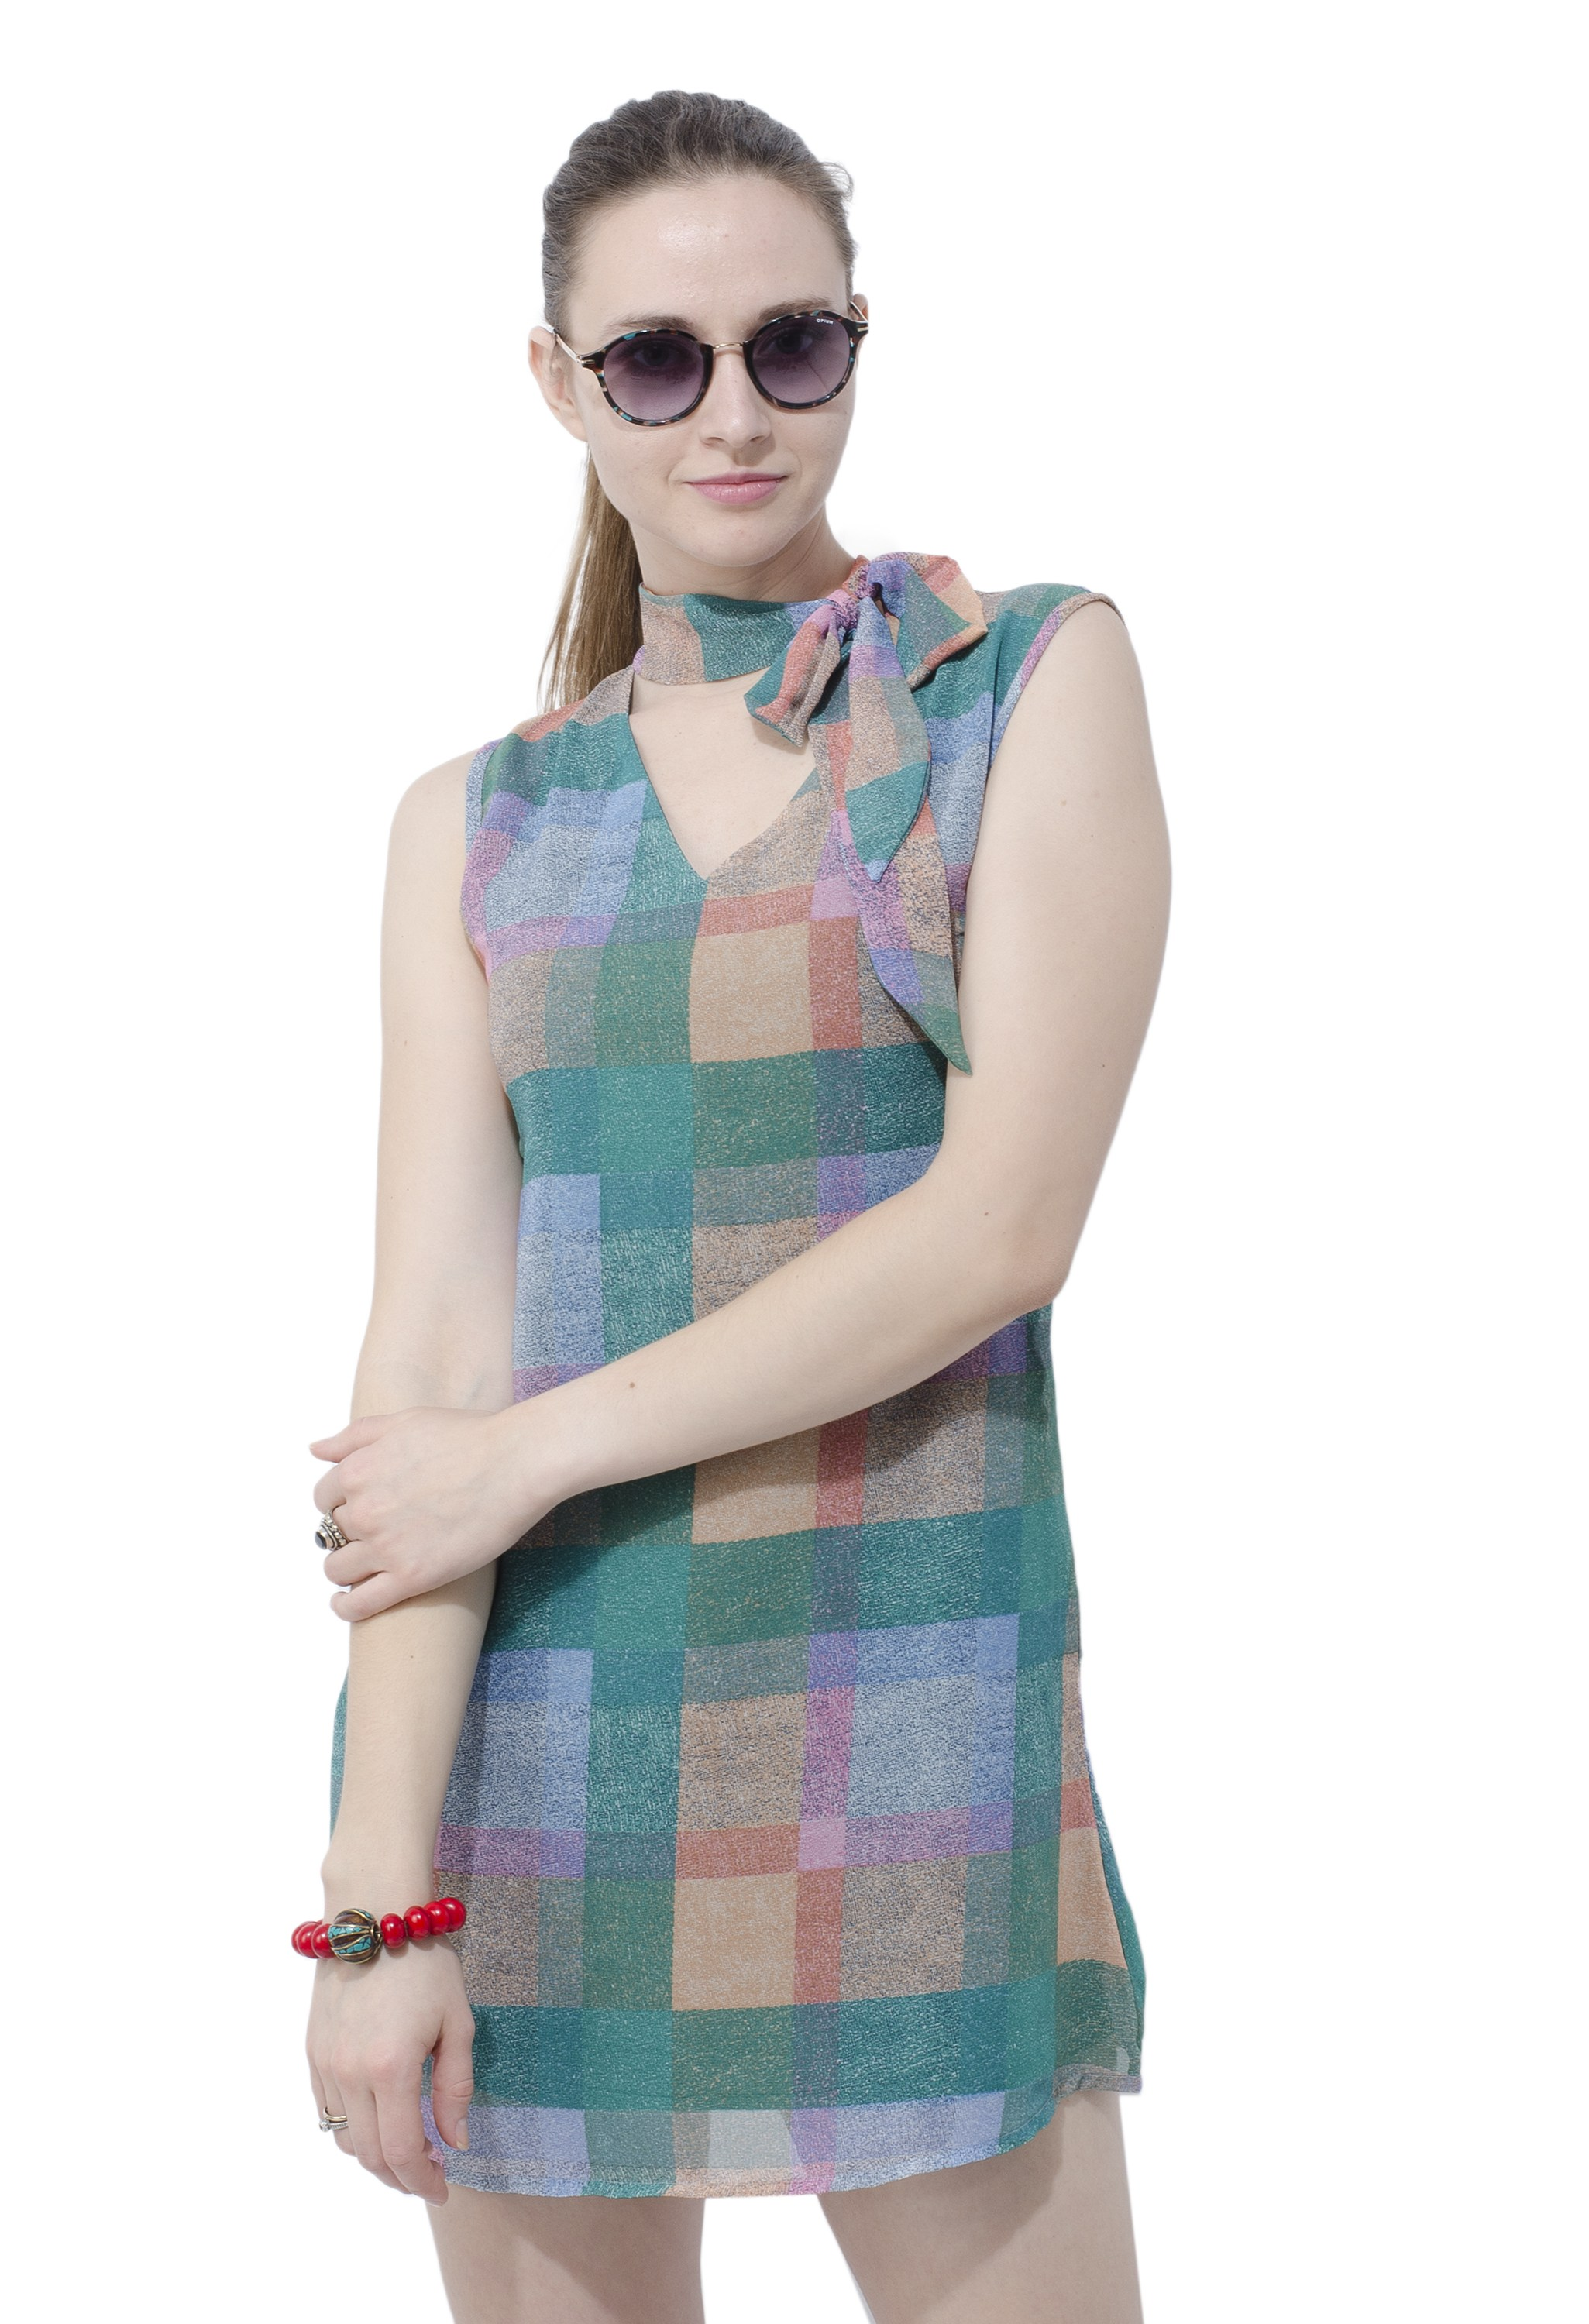 Retro dress with a neck tie from Grab Your Garb